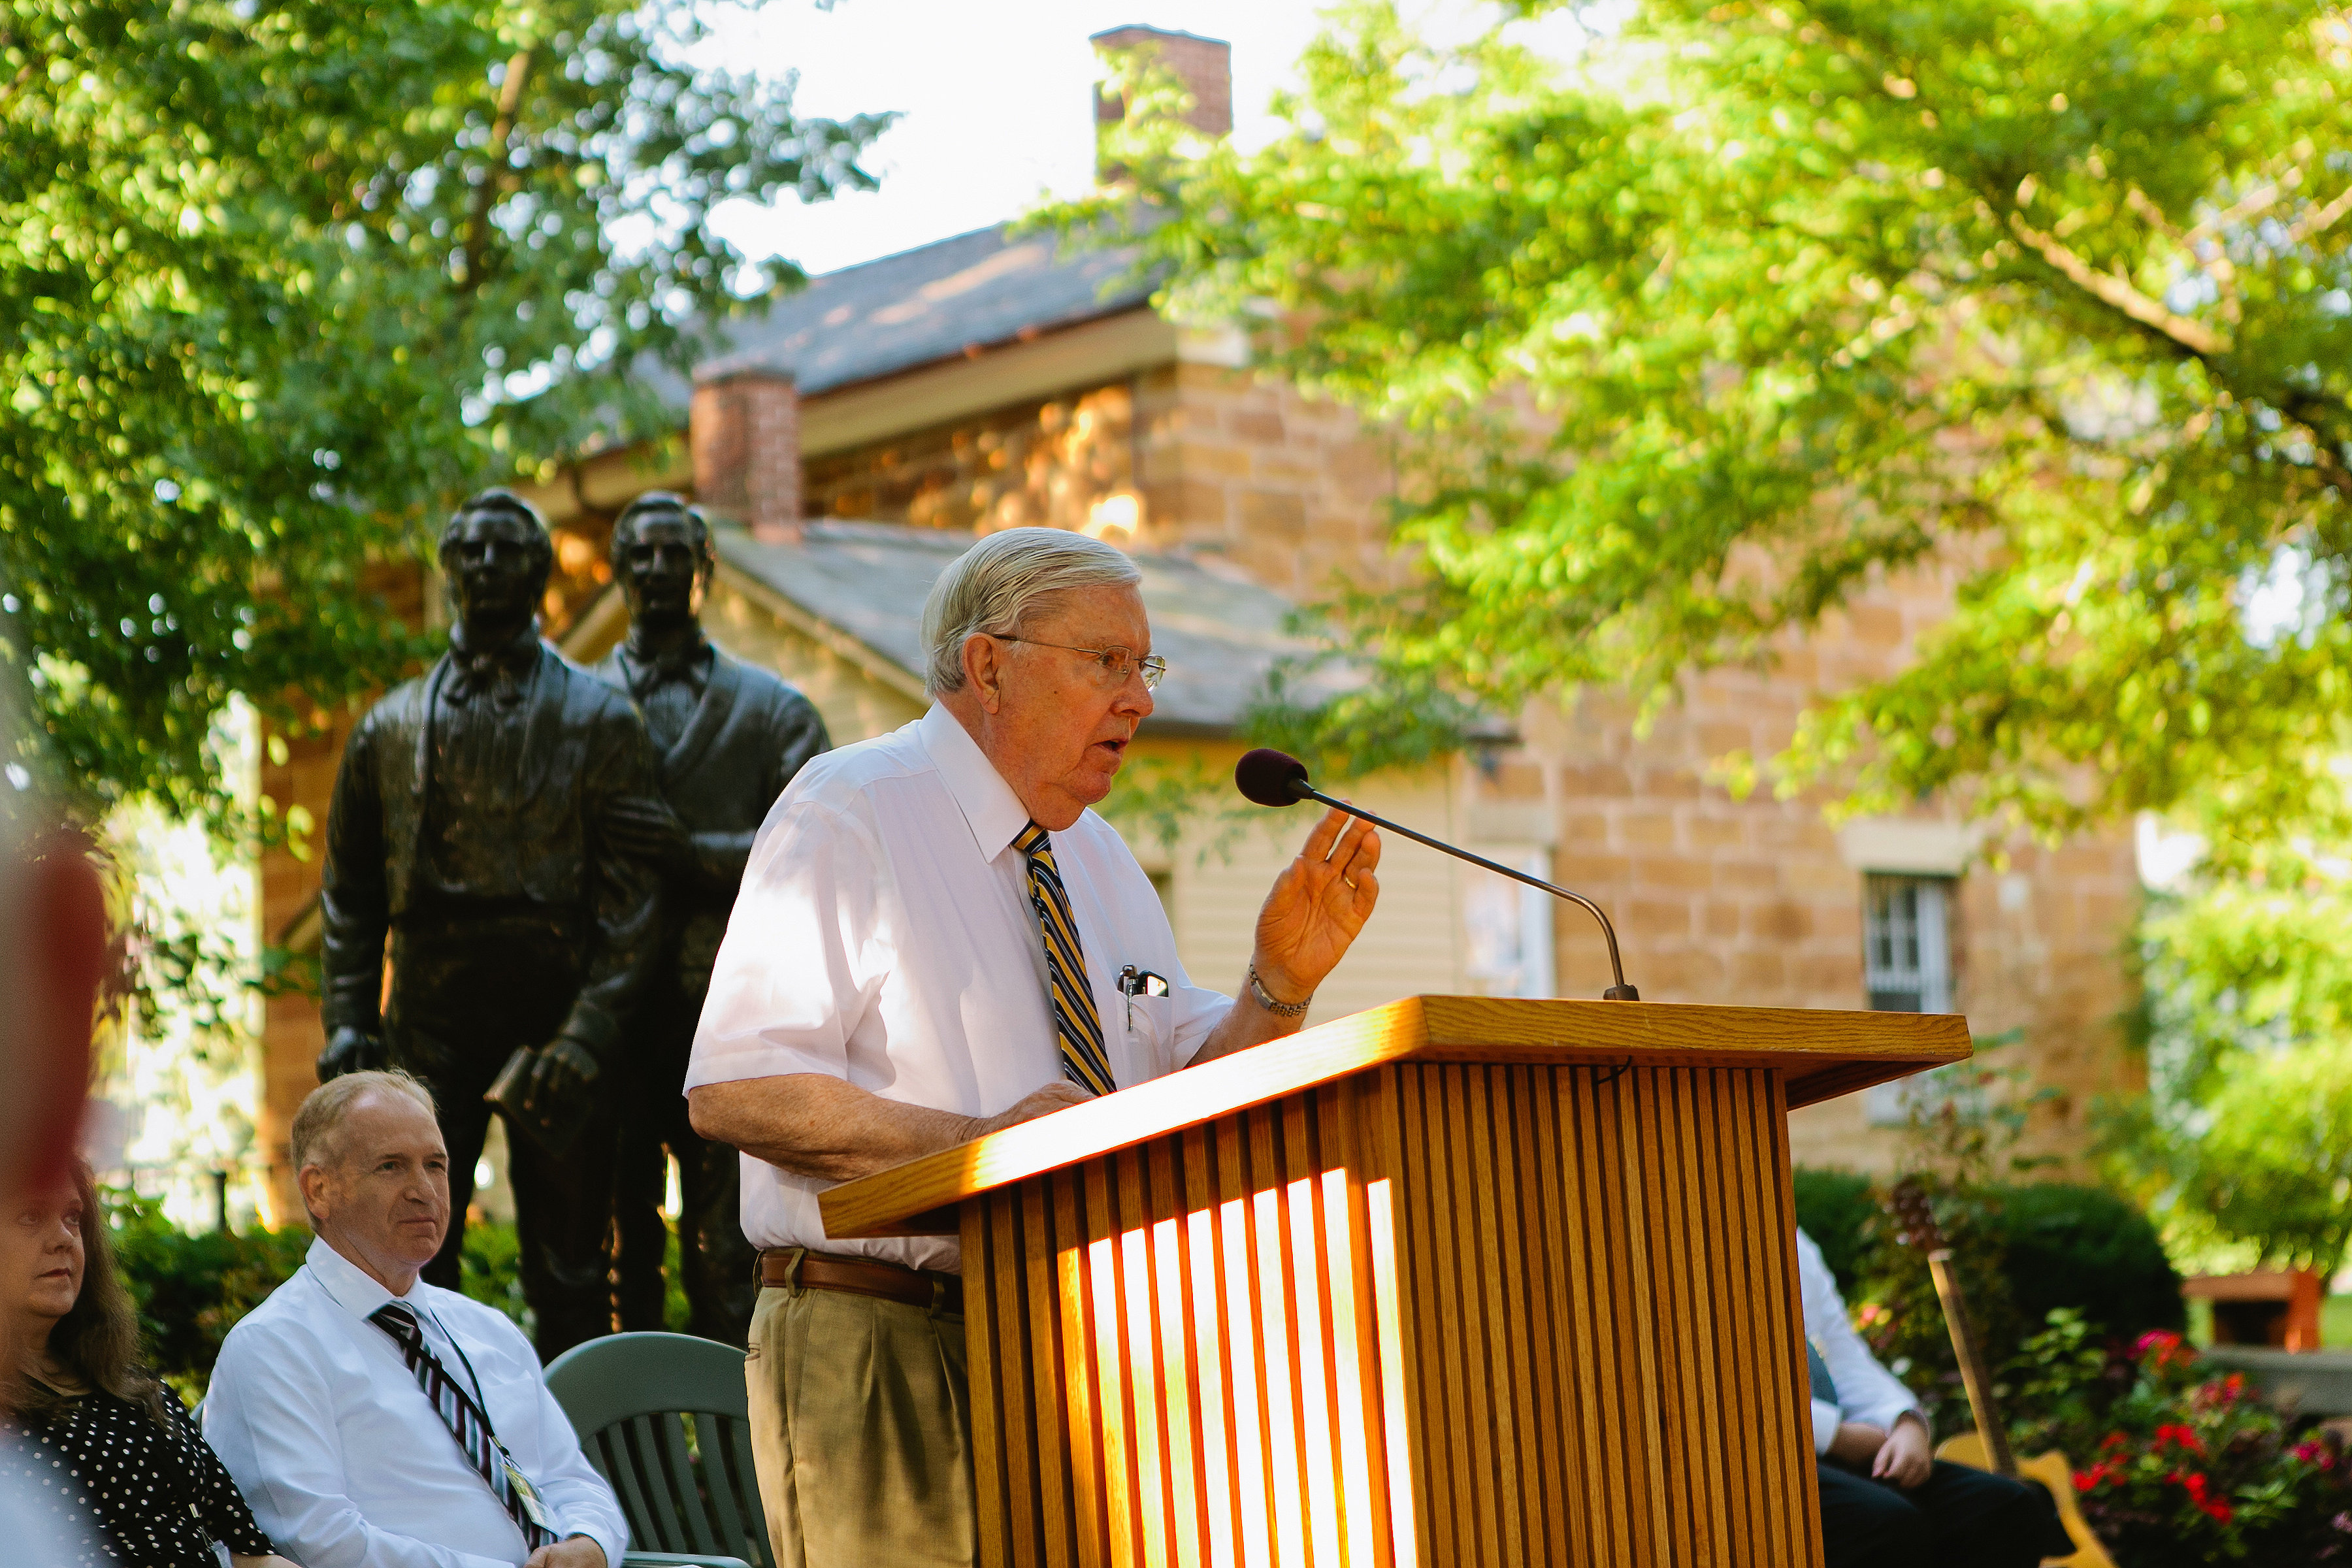 Elder M. Russell Ballard speaks at a devotional held outside Carthage Jail on Aug. 5. The devotional commemorated the 25th anniversary of the dedication of the Smith Family Cemetery.